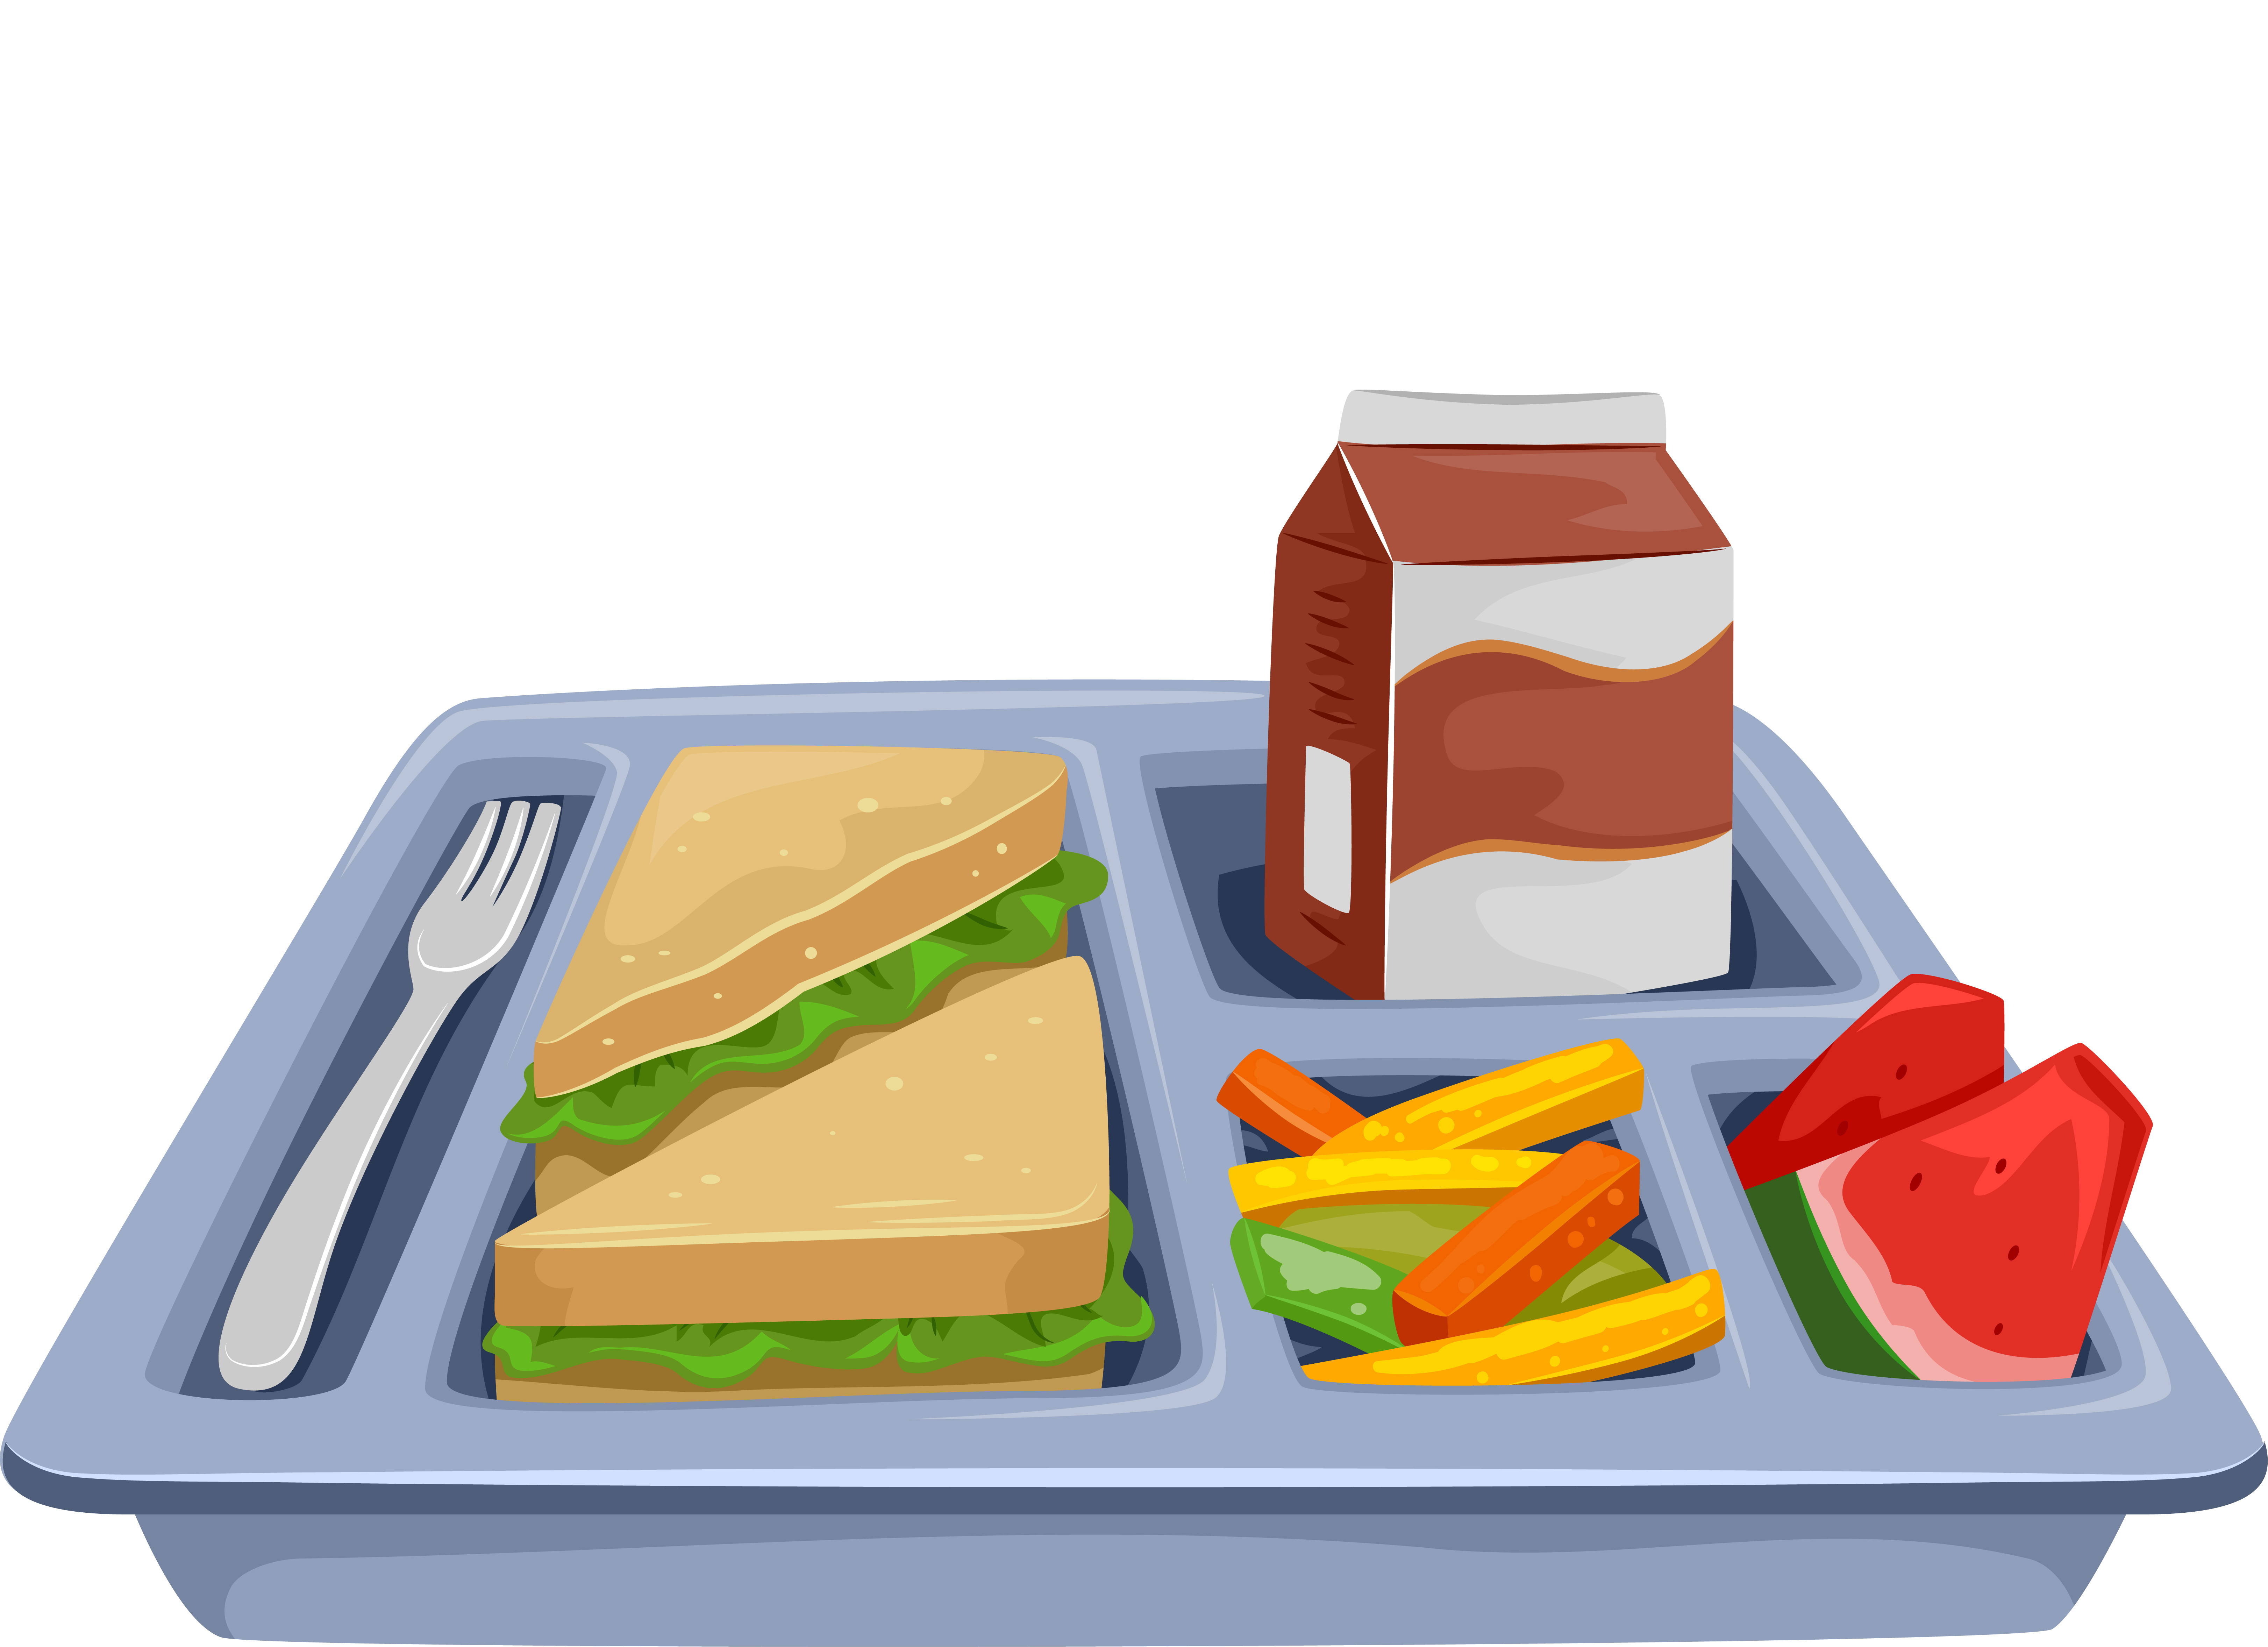 Cafeteria clipart school lunch tray. December form our lady